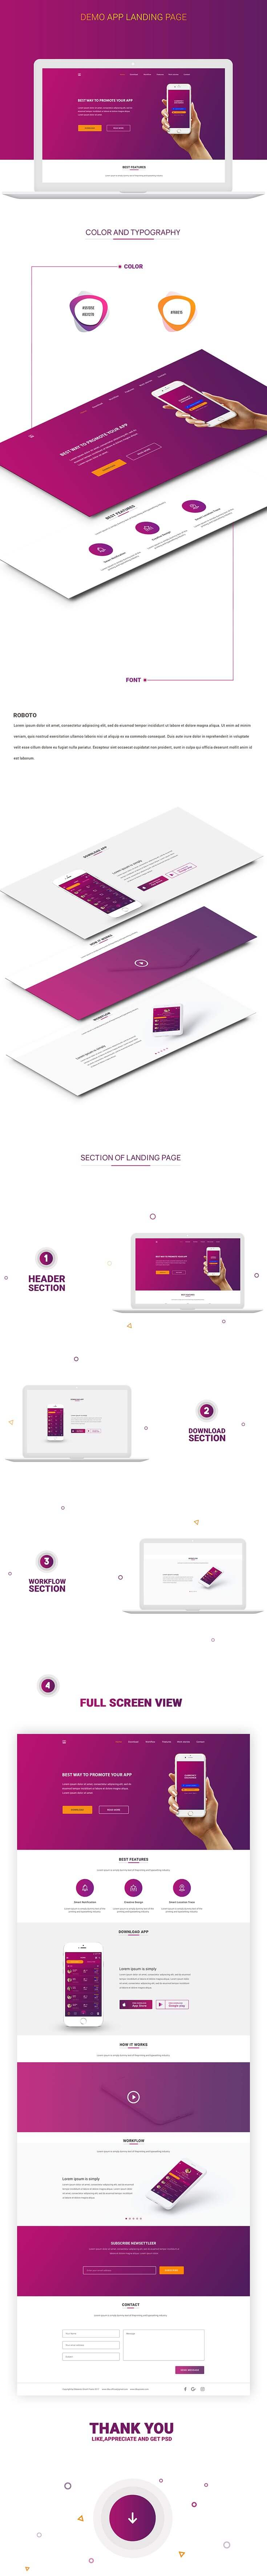 Free Money Exchange App Landing Page Design PSD